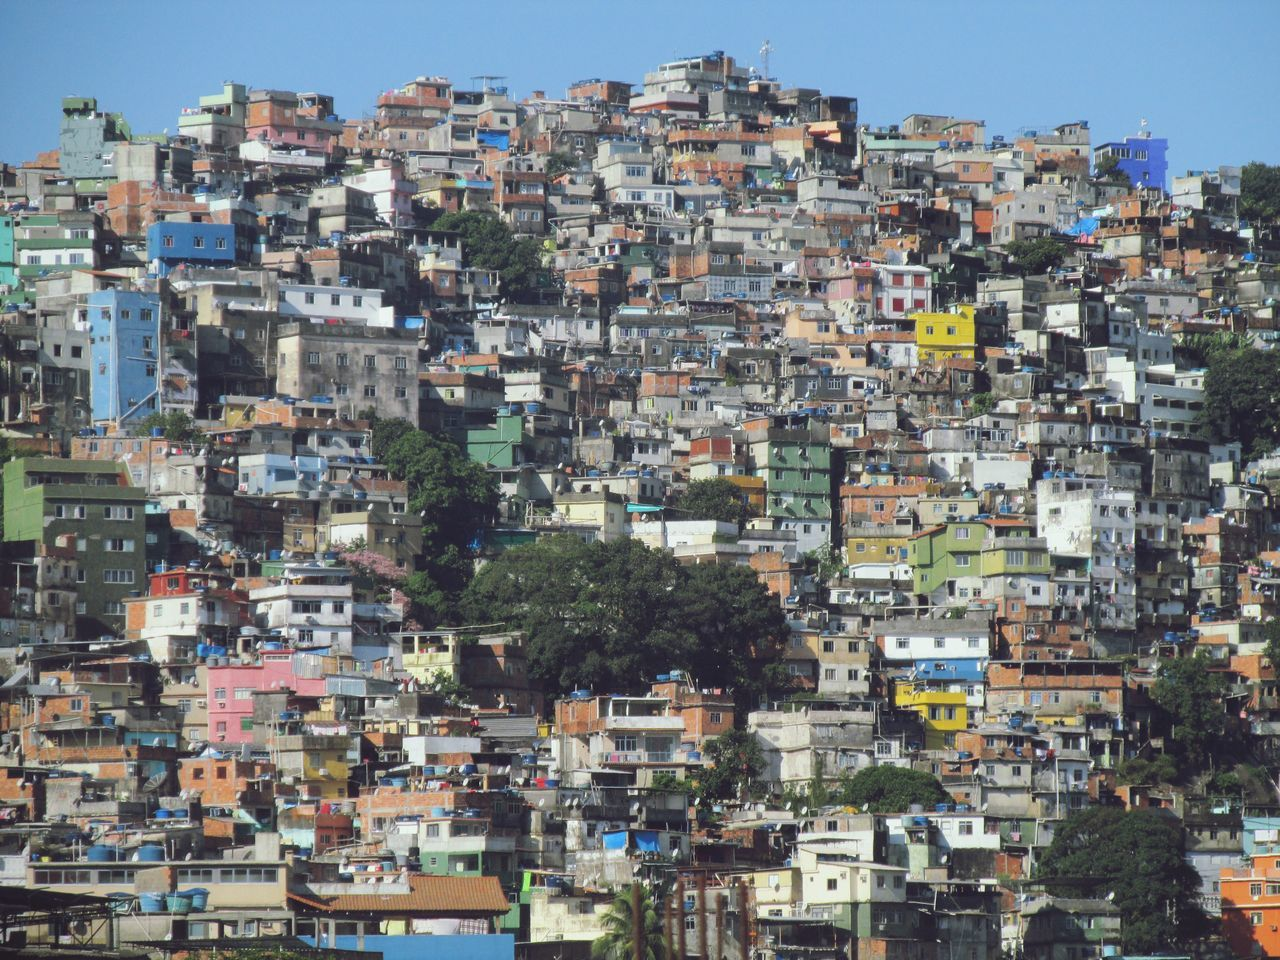 Rocinha! Building Exterior Crowded Architecture Built Structure Residential Building Residential District Favela Favelabrazil Favela Rocinha Rocinha Bestoftheday Photooftheday Photo Of The Day EyeEm Best Shots Brasil ♥ Brasil Brazil Eye4photography  Photography Slum Rio De Janeiro Rio De Janeiro Eyeem Fotos Collection⛵ Riodejaneiro Epic Cityscape